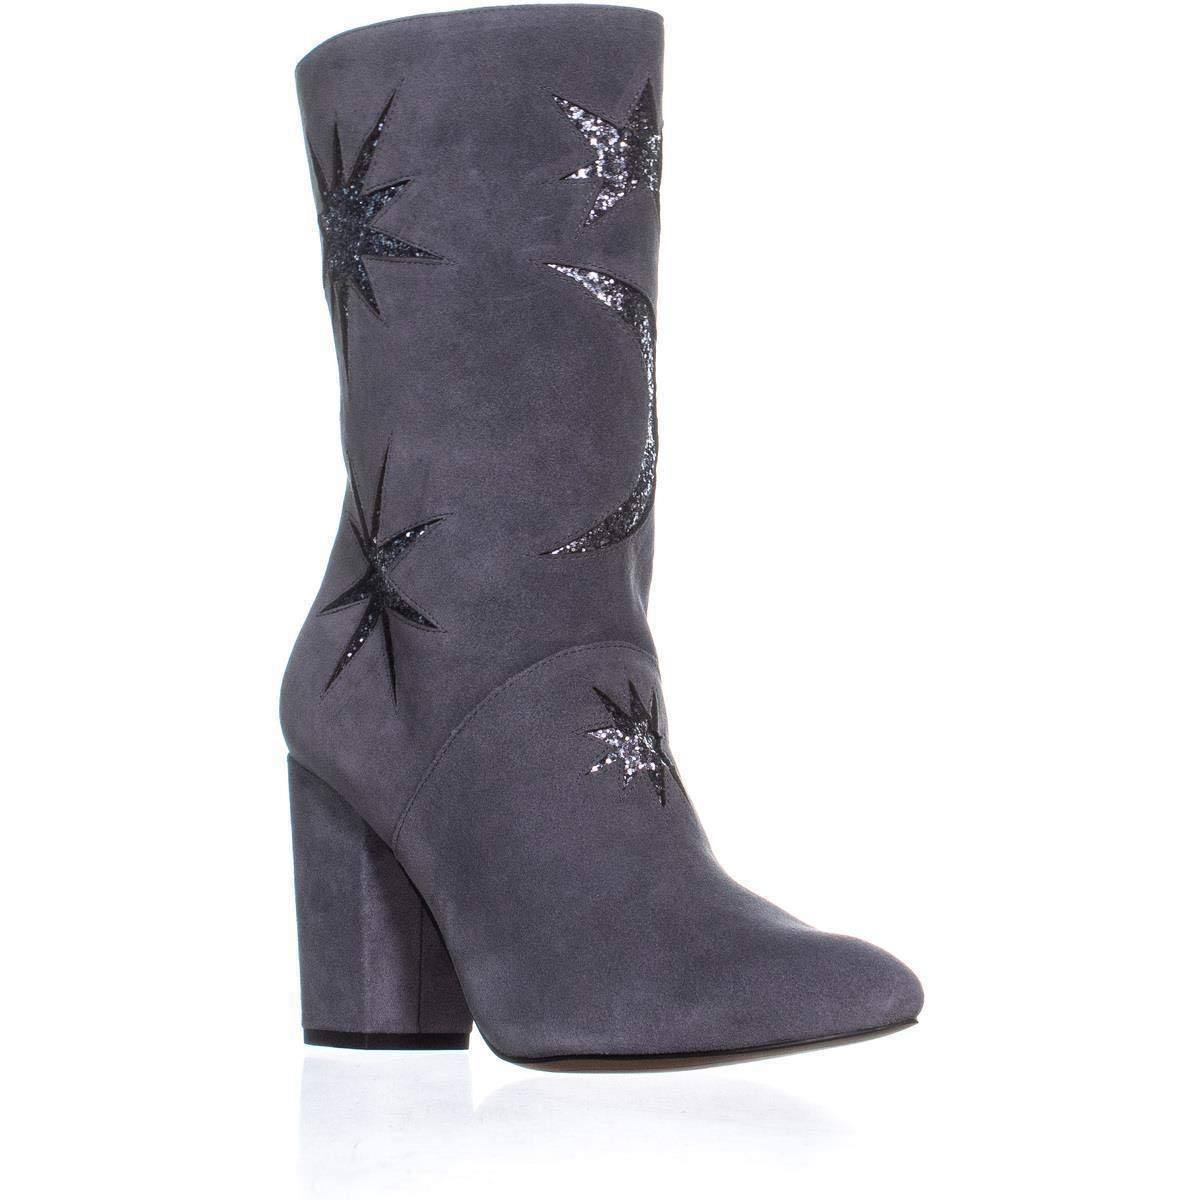 Grey Suede Glitter Avec Les Filles Womens Nikita Suede Glitter Ankle Boots